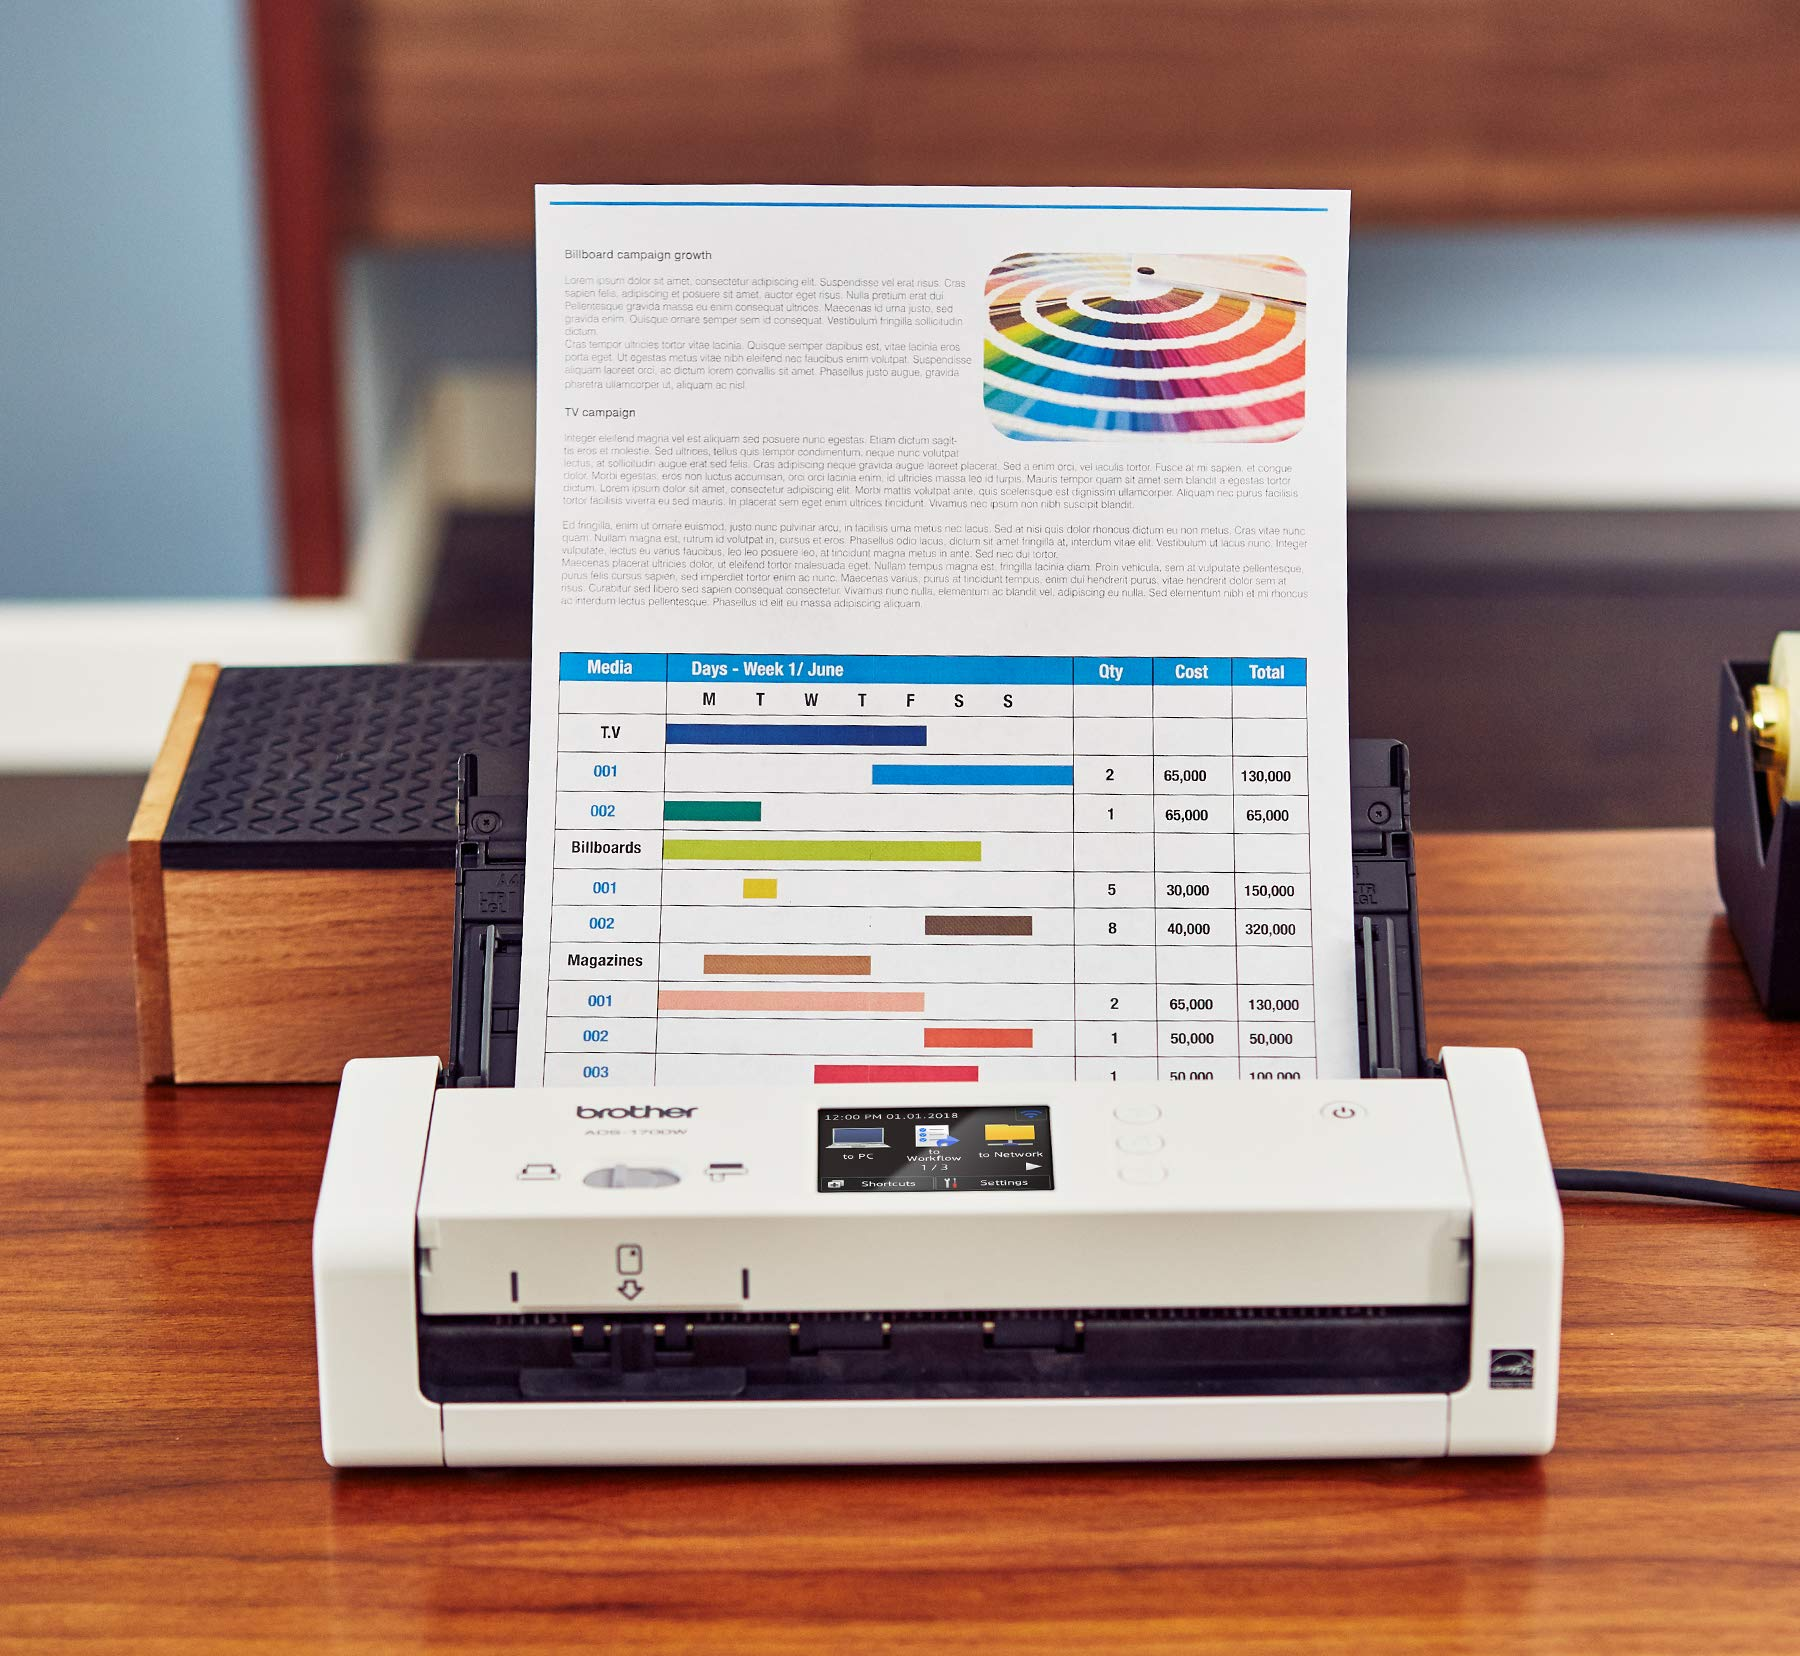 Brother Wireless Compact Desktop Scanner, ADS-1700W, Fast Scan Speeds, Easy-to-Use, Ideal for Home, Home Office or On-the-Go Professionals by Brother (Image #3)